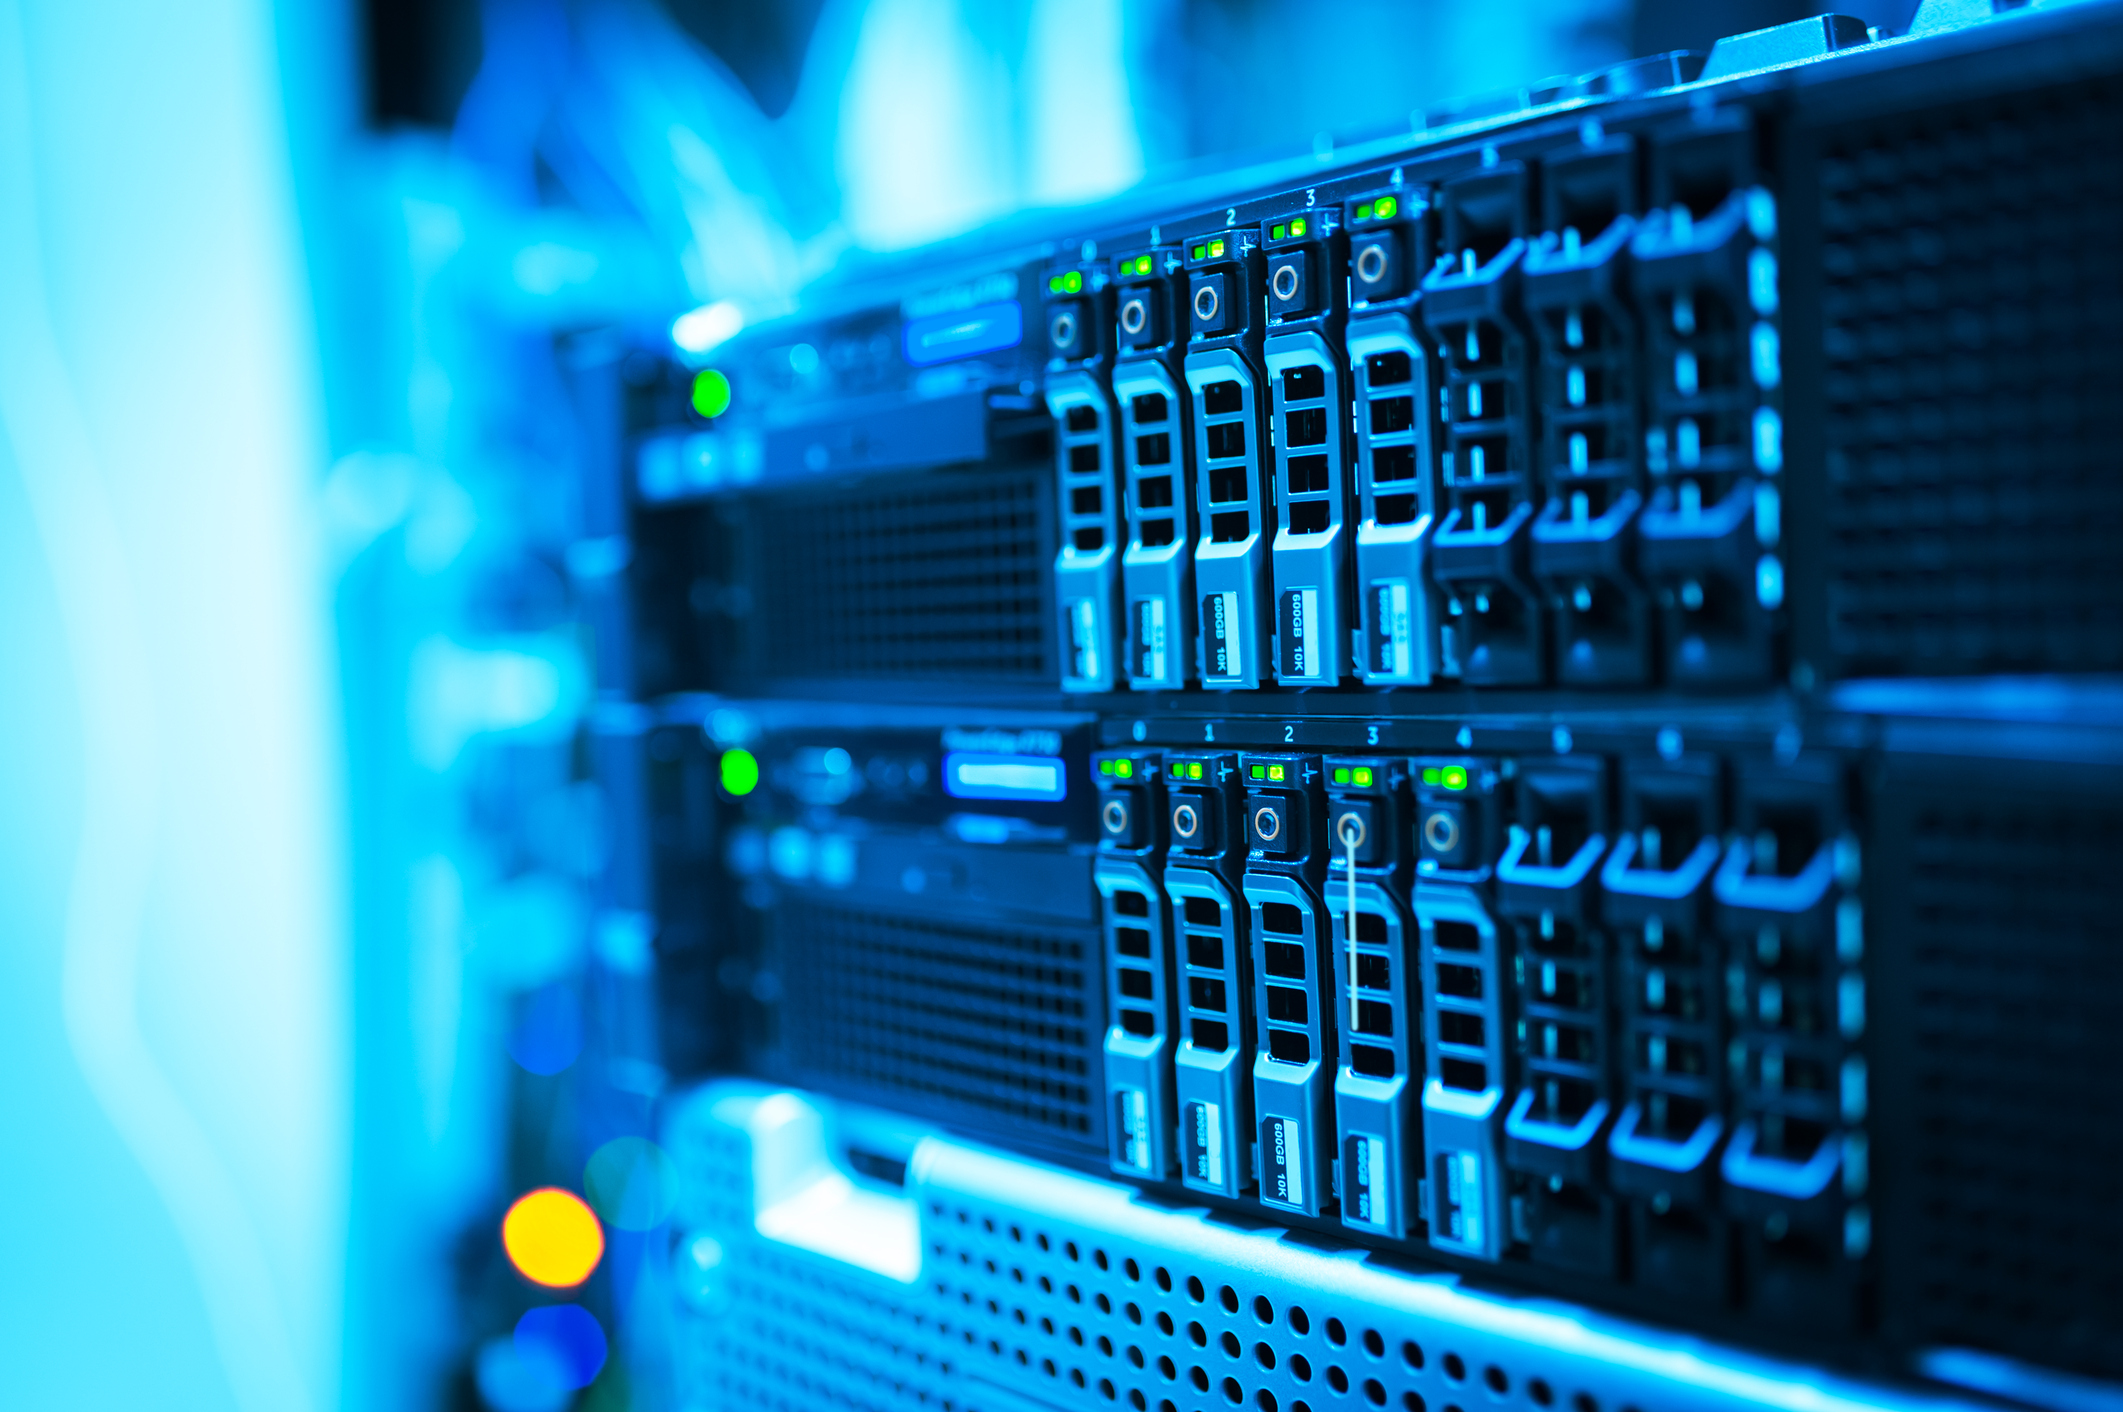 We help public sector customers design, acquire, build, and deploy the infrastructure technologies required to achieve today's operational requirements while ensuring reduced costs.